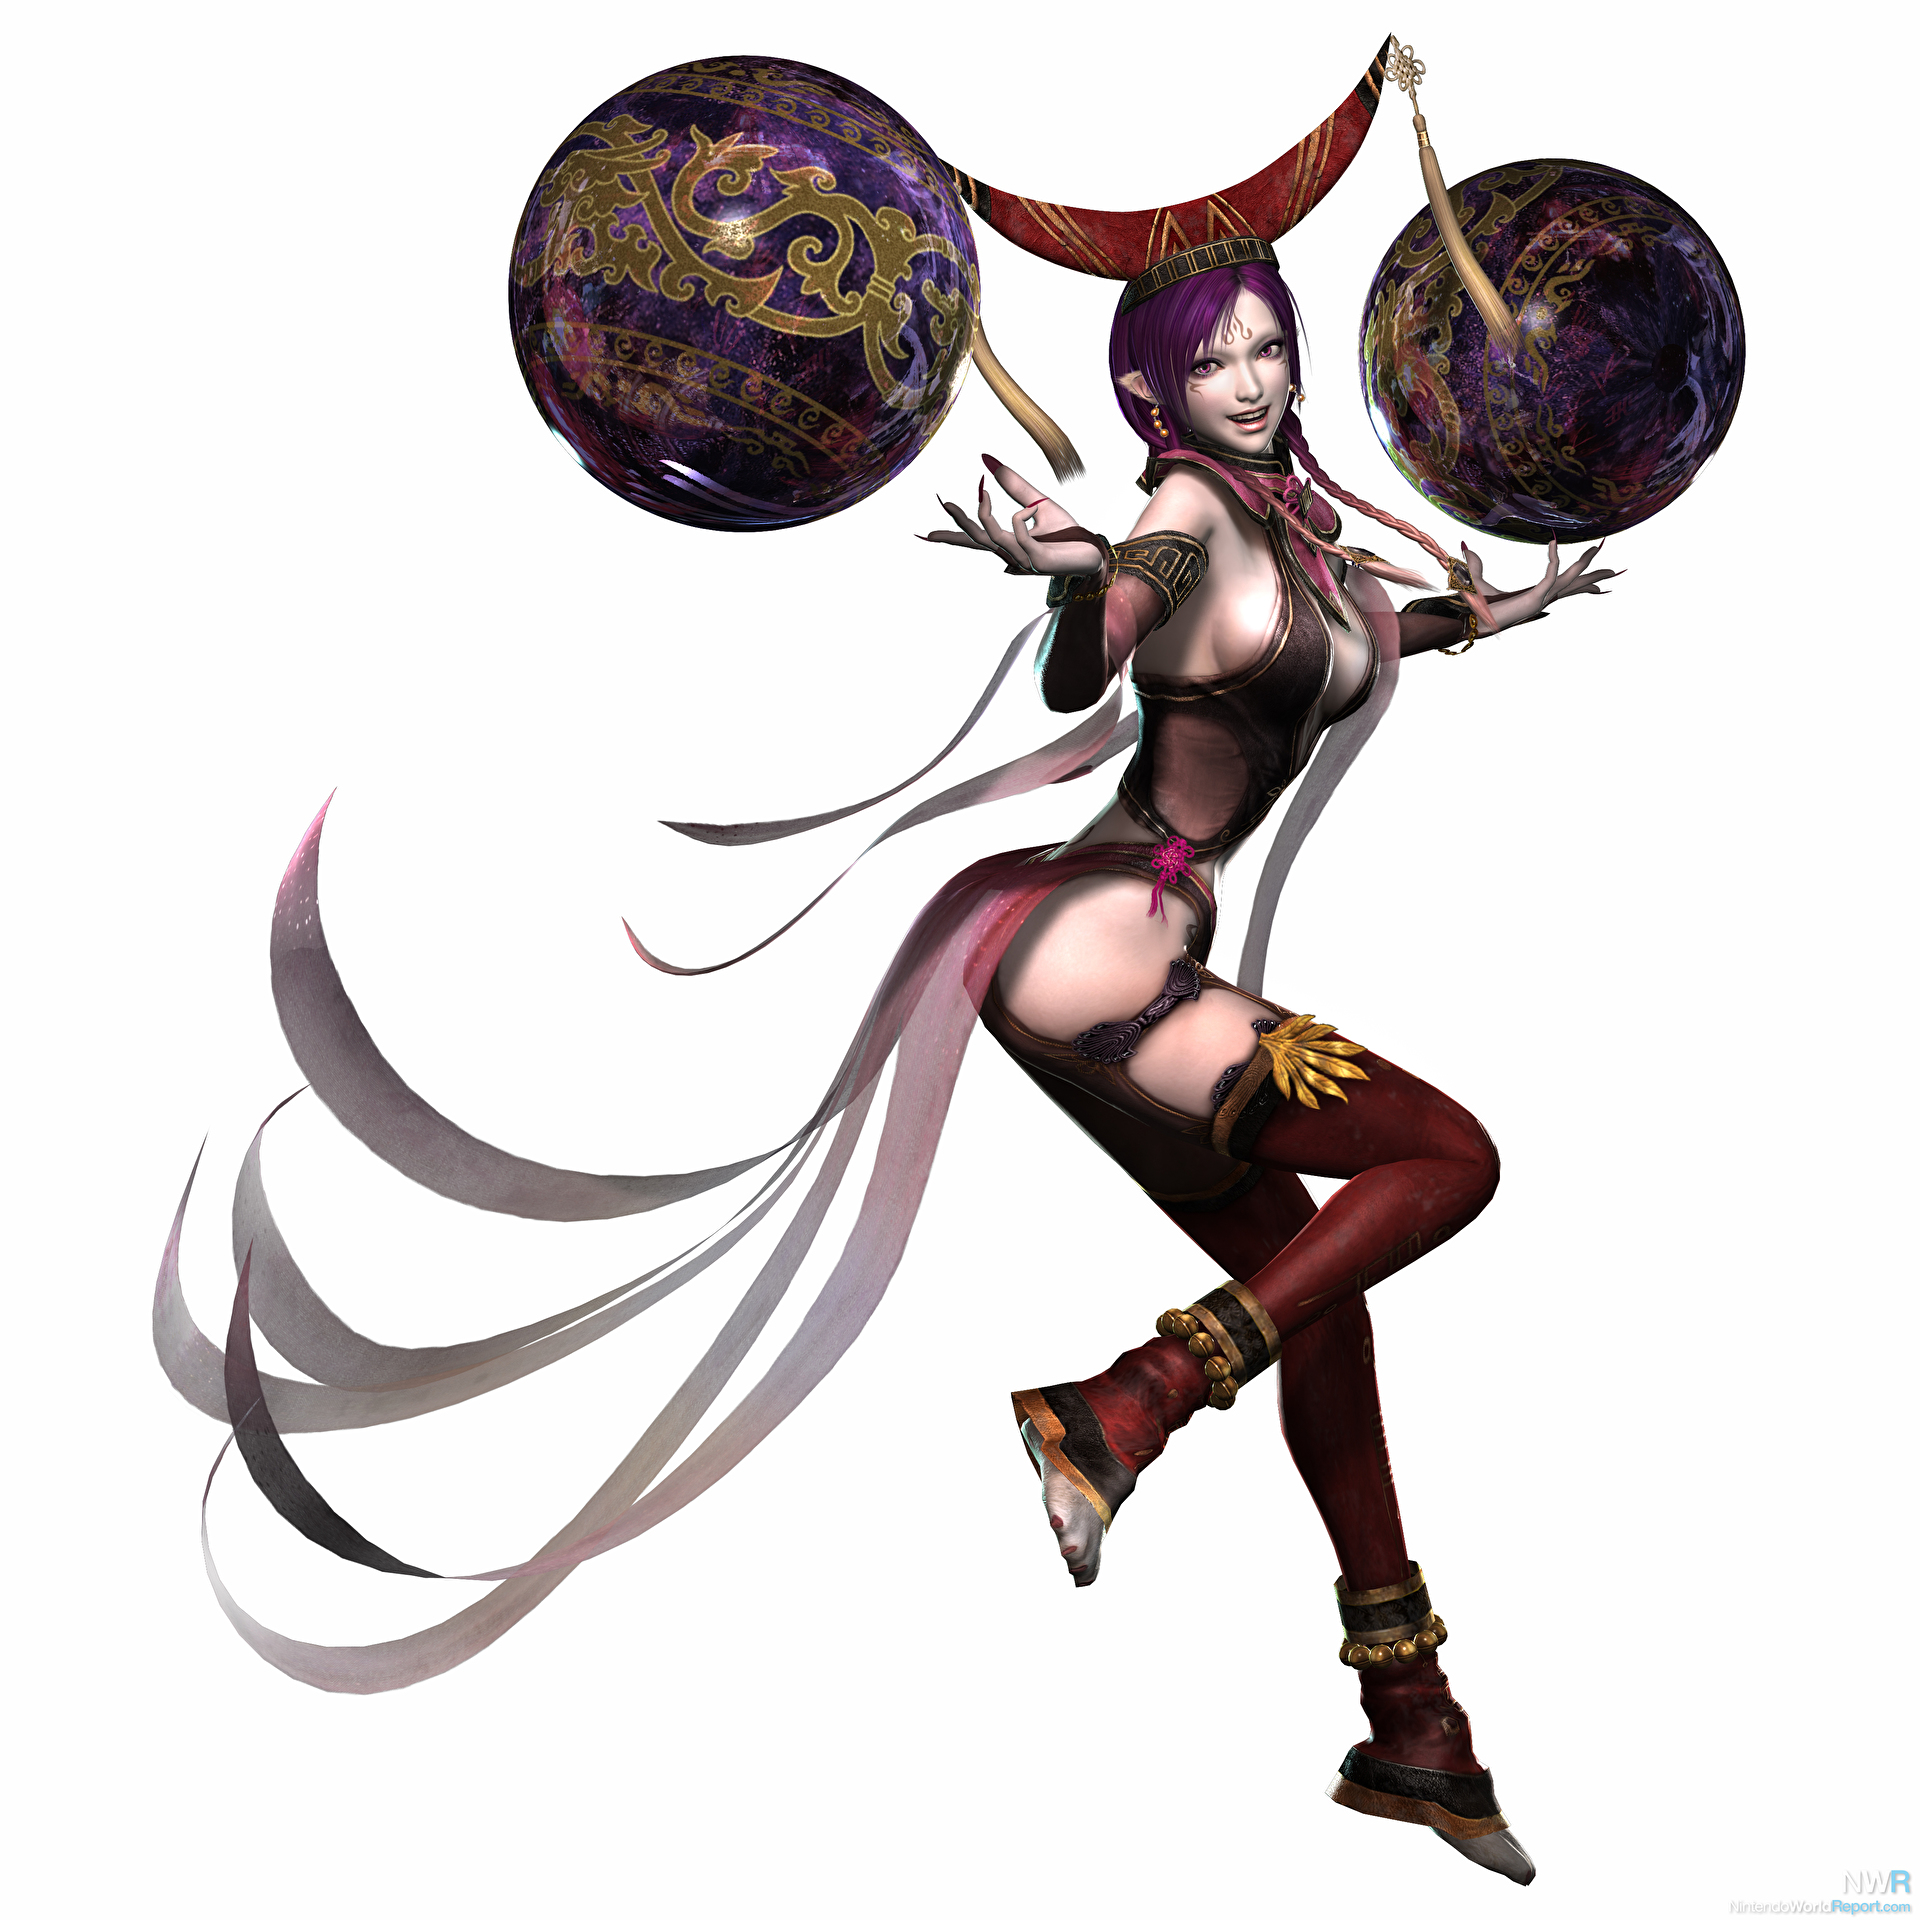 Warriors orochi 3 ultimate da ji hentai erotic image